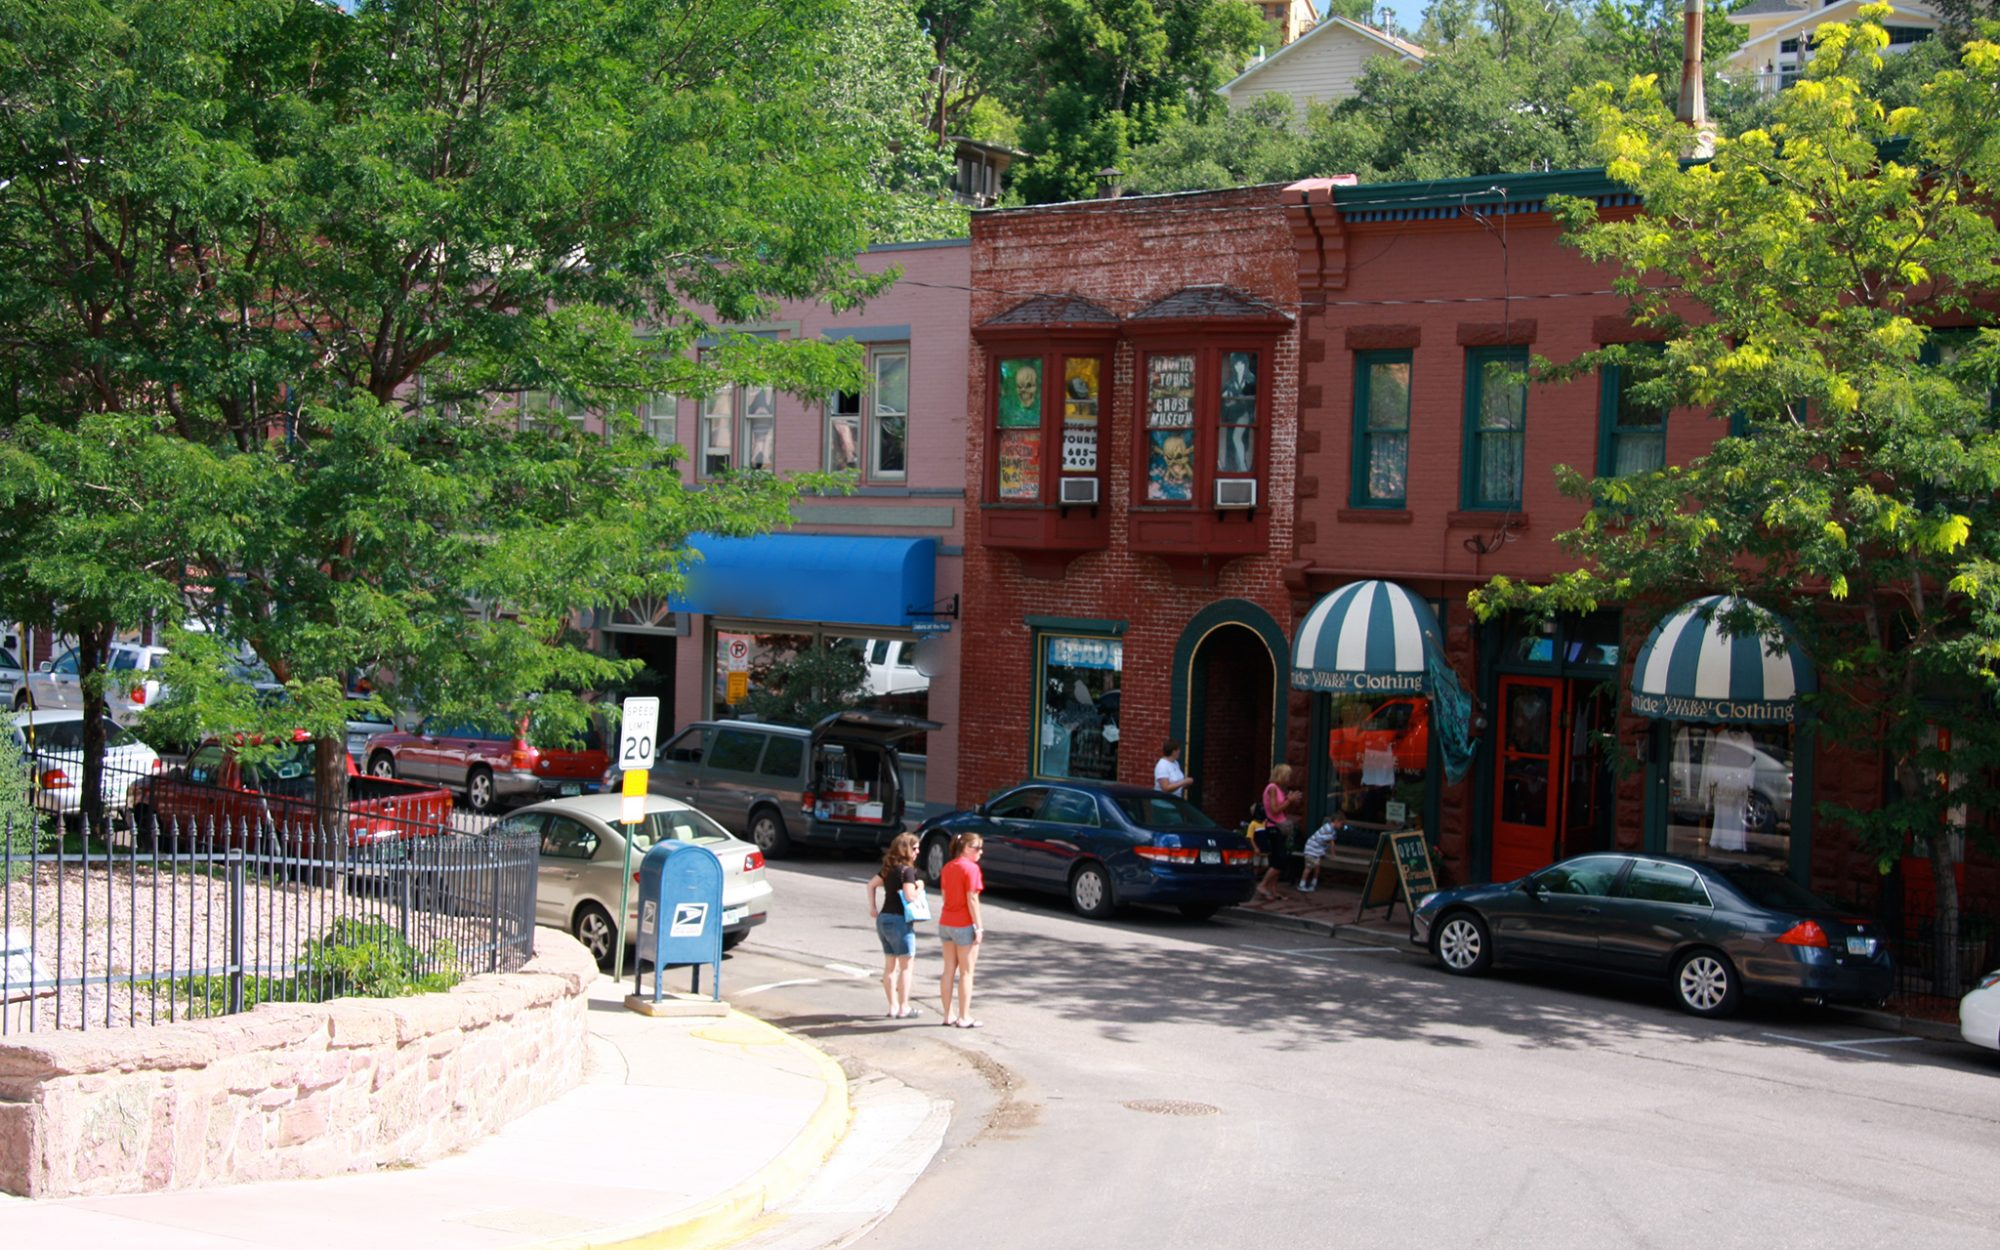 America's Best Towns for July 4th: Manitou Springs